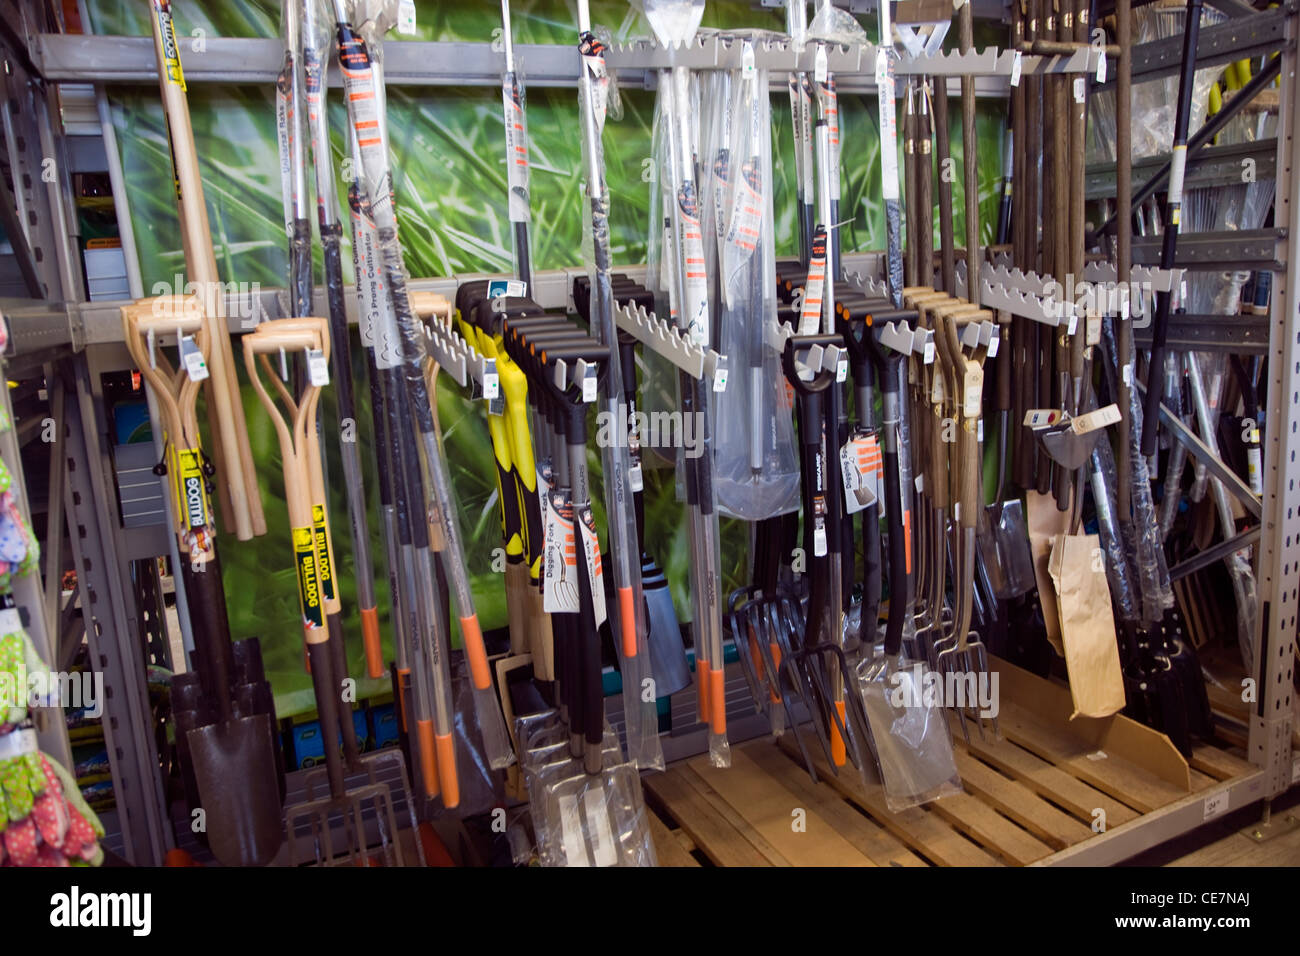 Garden forks spades on sale garden centre - Stock Image